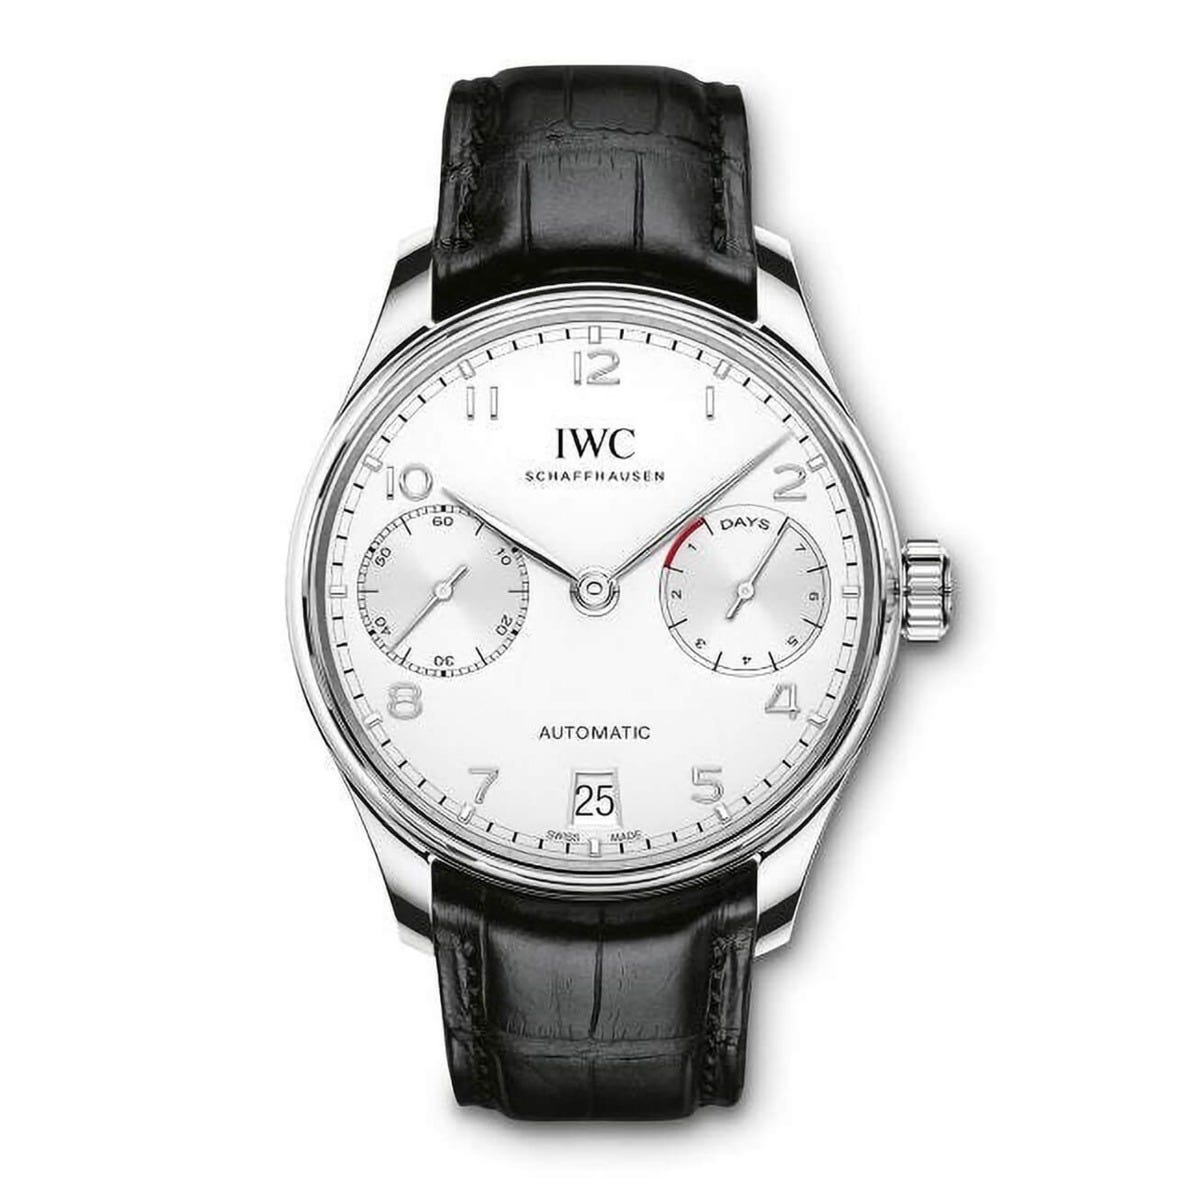 IWC Portugieser Automatic Seven Day Calendar Steel Men's Watch